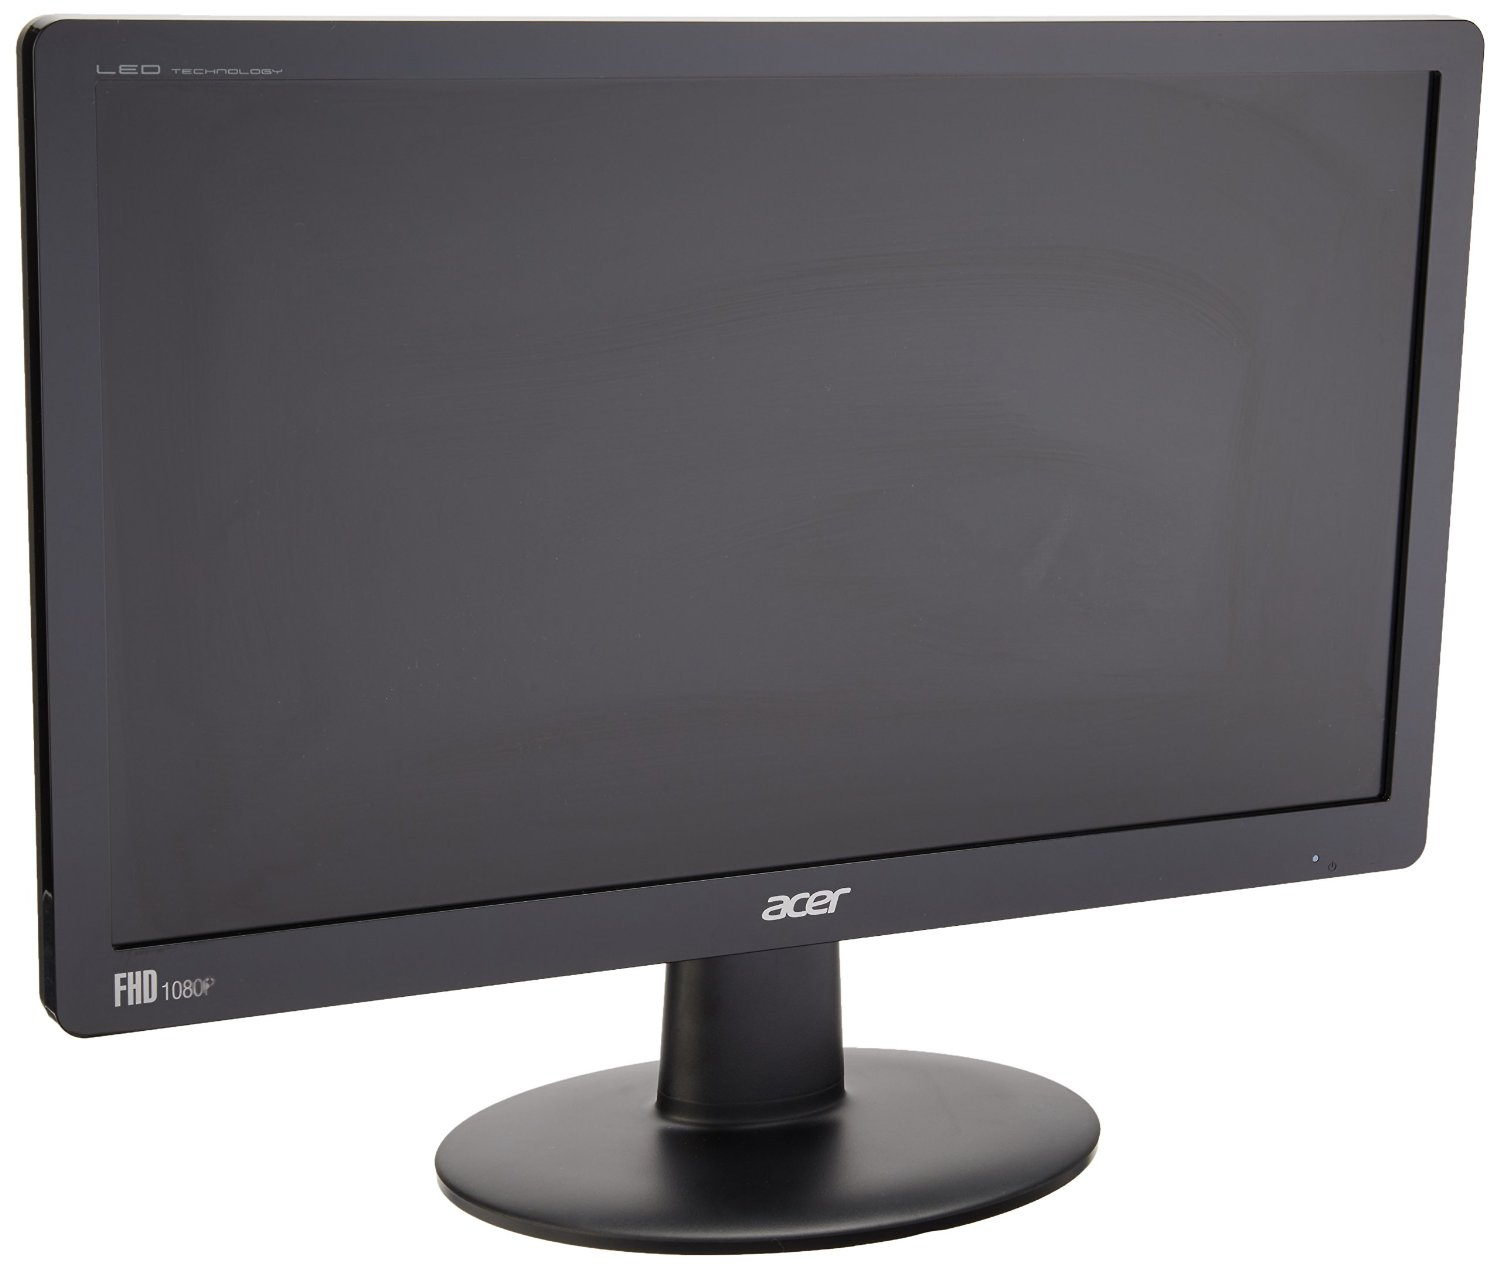 Cheap Acer S200 Price, find Acer S200 Price deals on line at Alibaba com